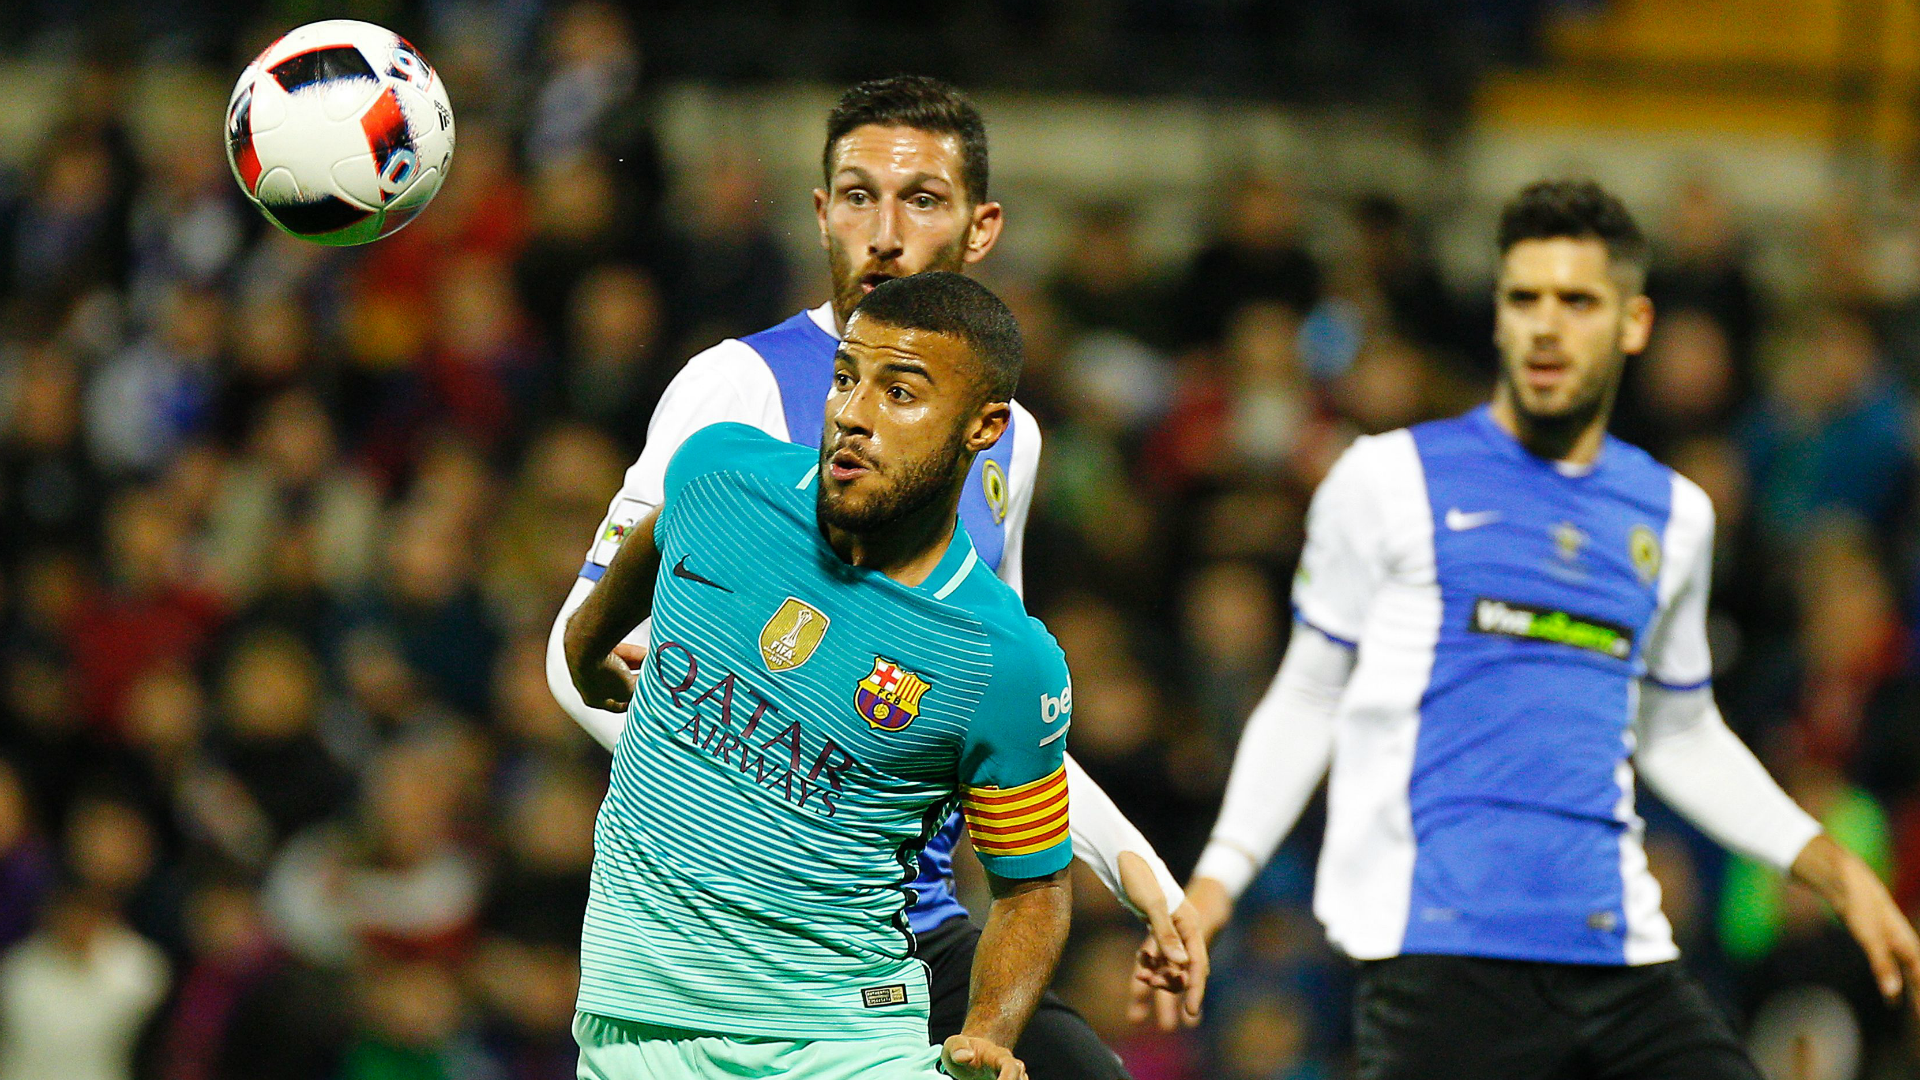 Rafinha Fighting for Ball against Hercules from Copa Del Rey